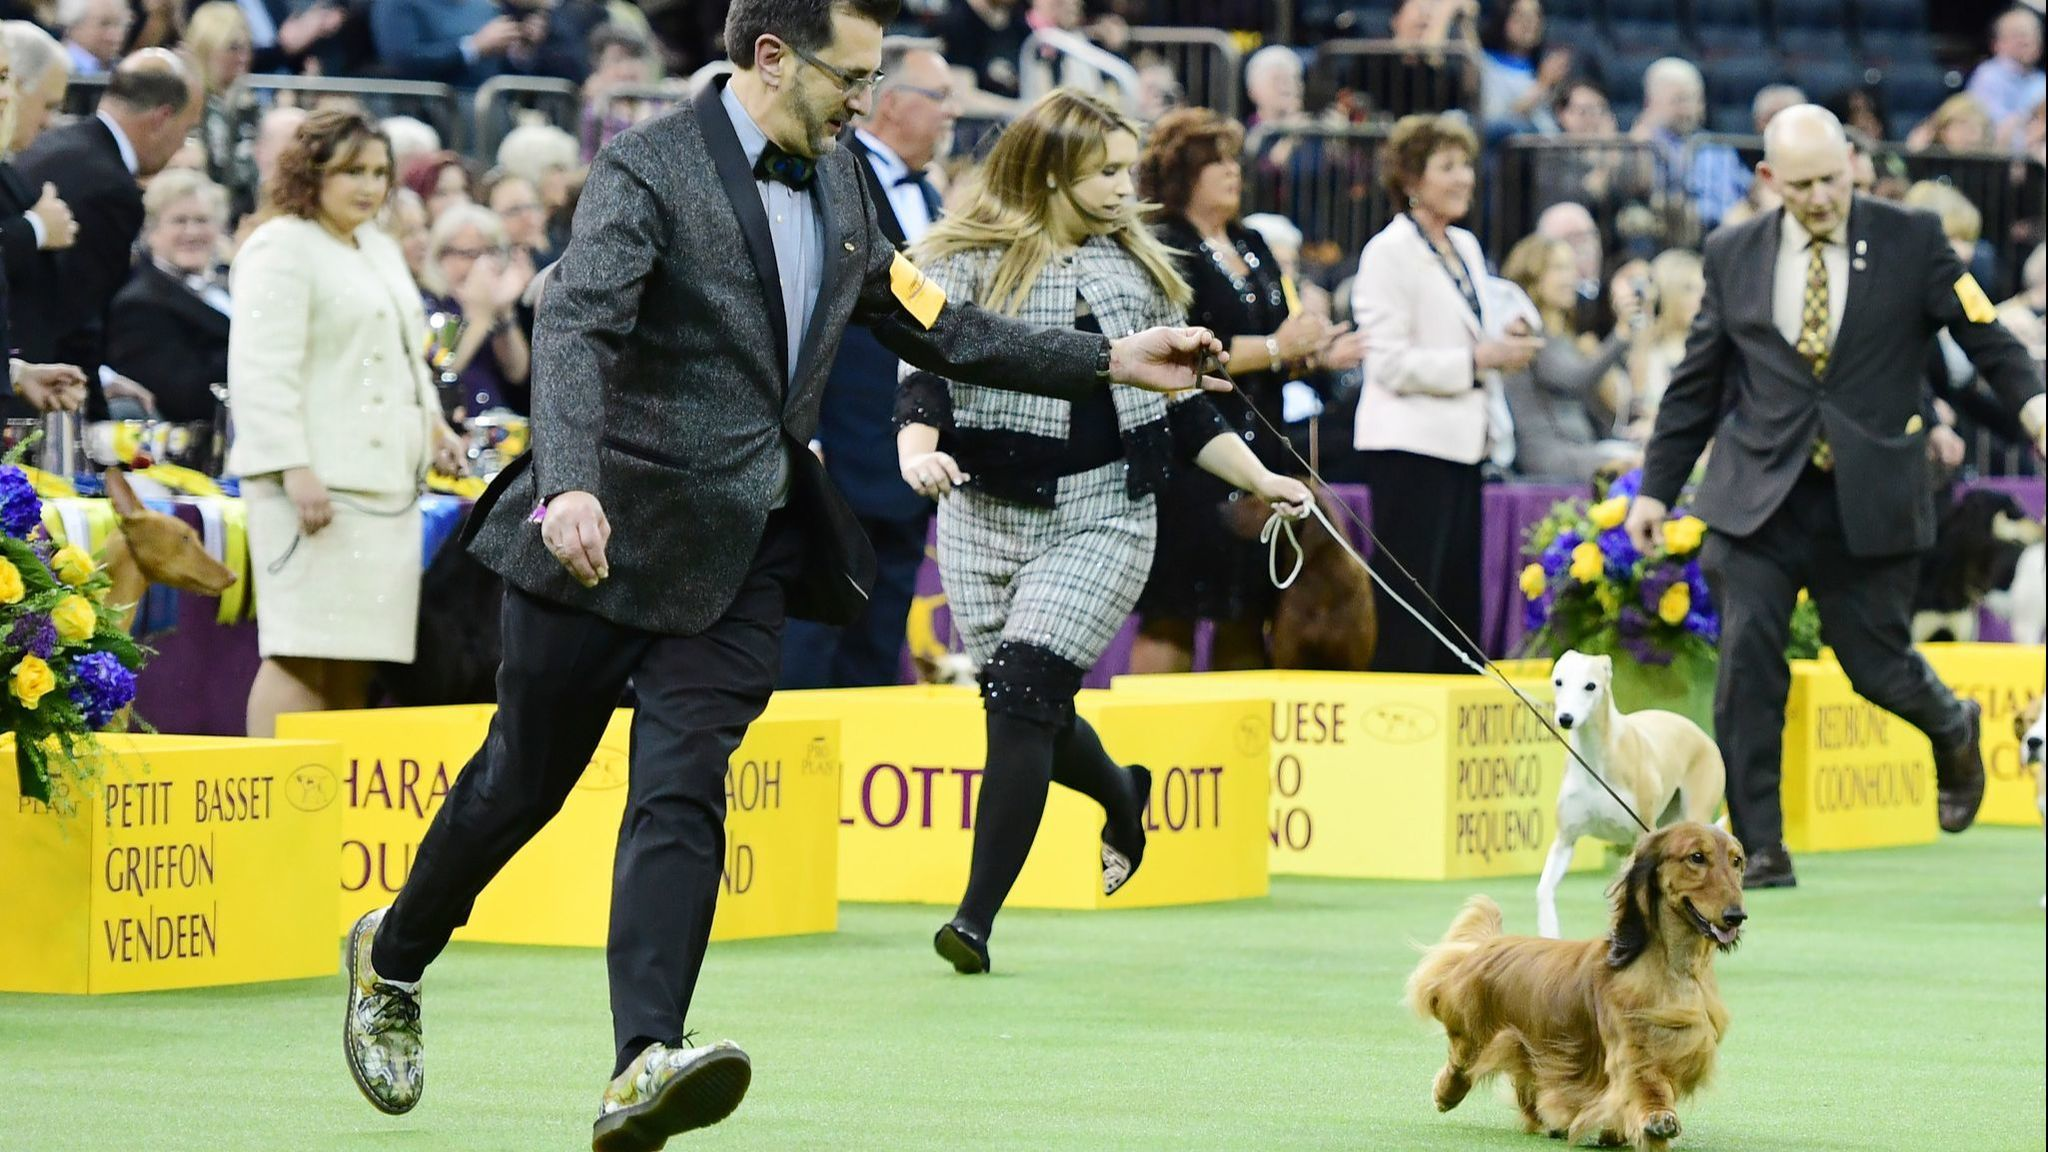 Never before has a dachshund been chosen as America's top dog. That could change Tuesday night